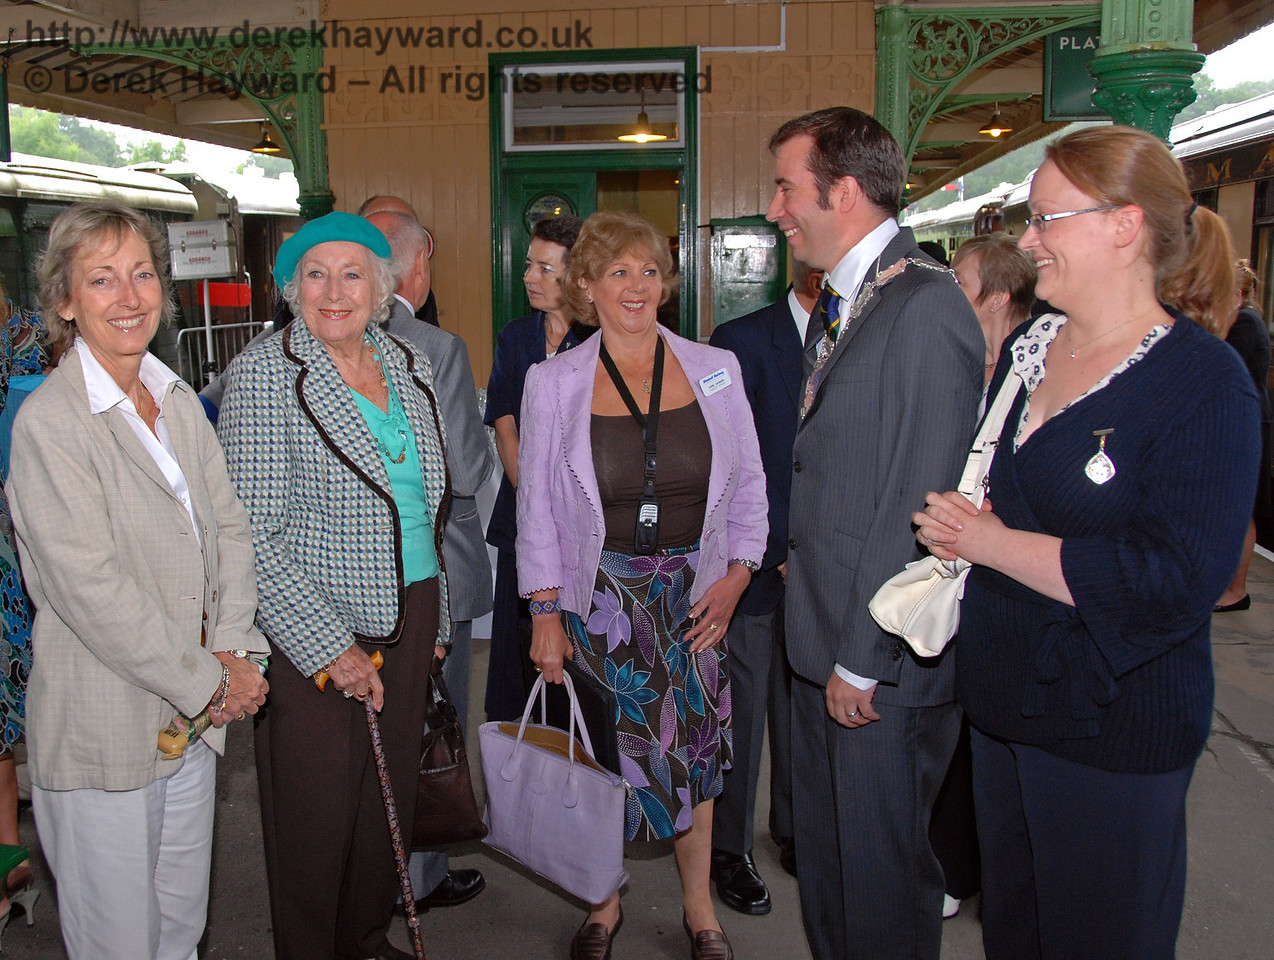 Virginia Lewis Jones, Dame Vera Lynn, Avril Gaynor (Bluebell Railway Press Officer), Councilor Lee Marmara, Mayor of East Grinstead and the Mayoress, Mrs Emma Marmara. 07.08.2009